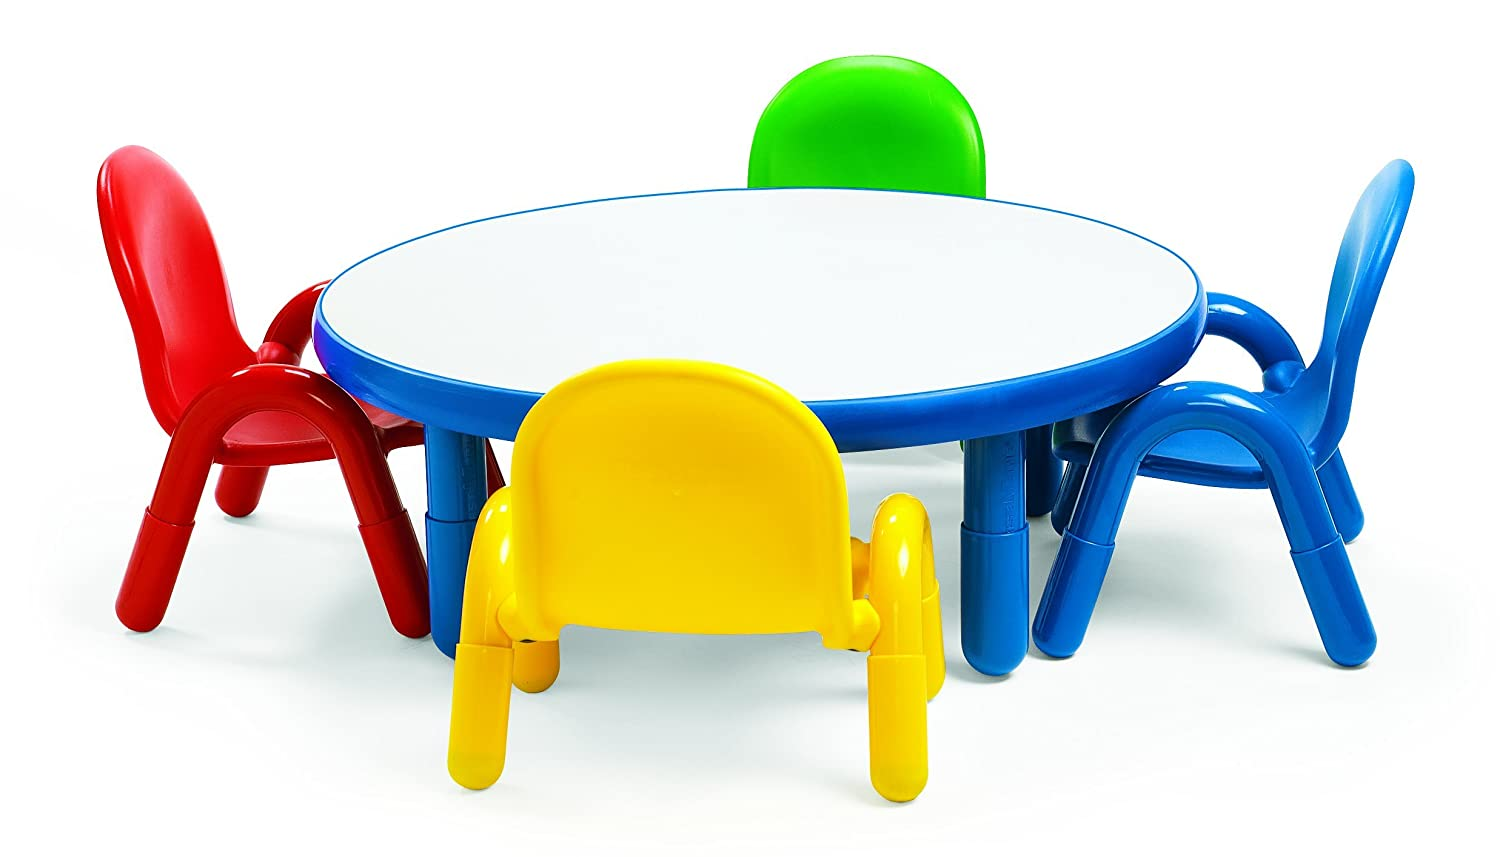 preschool table and chair set. preschool table and chair set t  sc 1 th 170 : child table and chair set plastic - pezcame.com